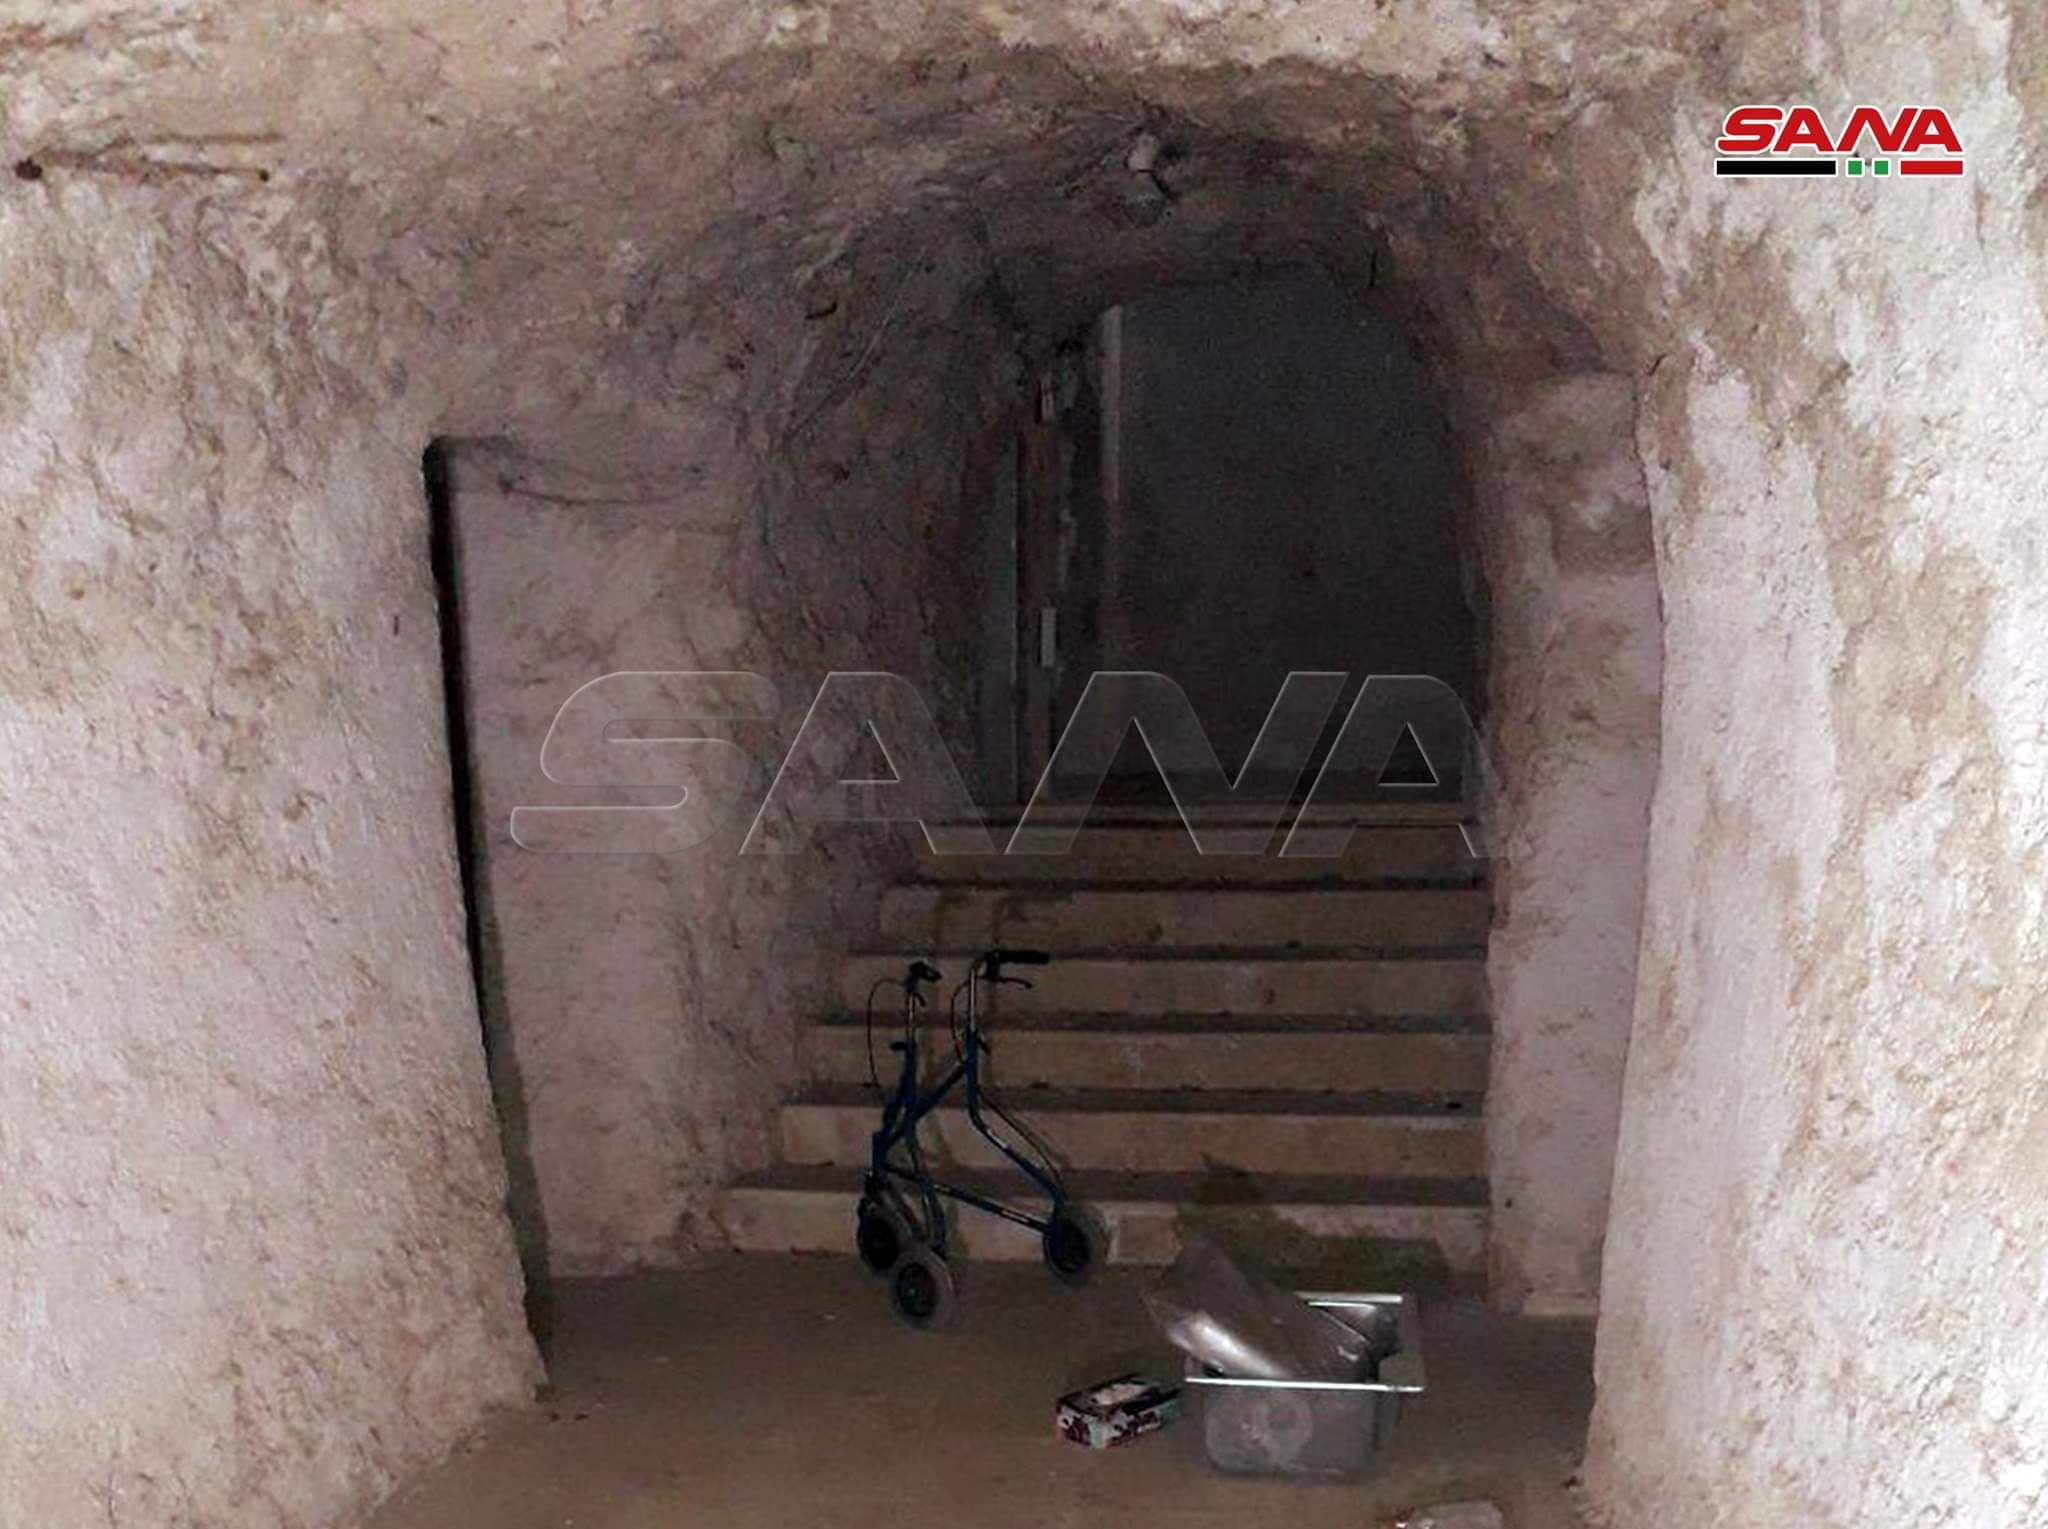 In Photos: Syrian Army Uncovers Fortified Headquarters In Saraqib City